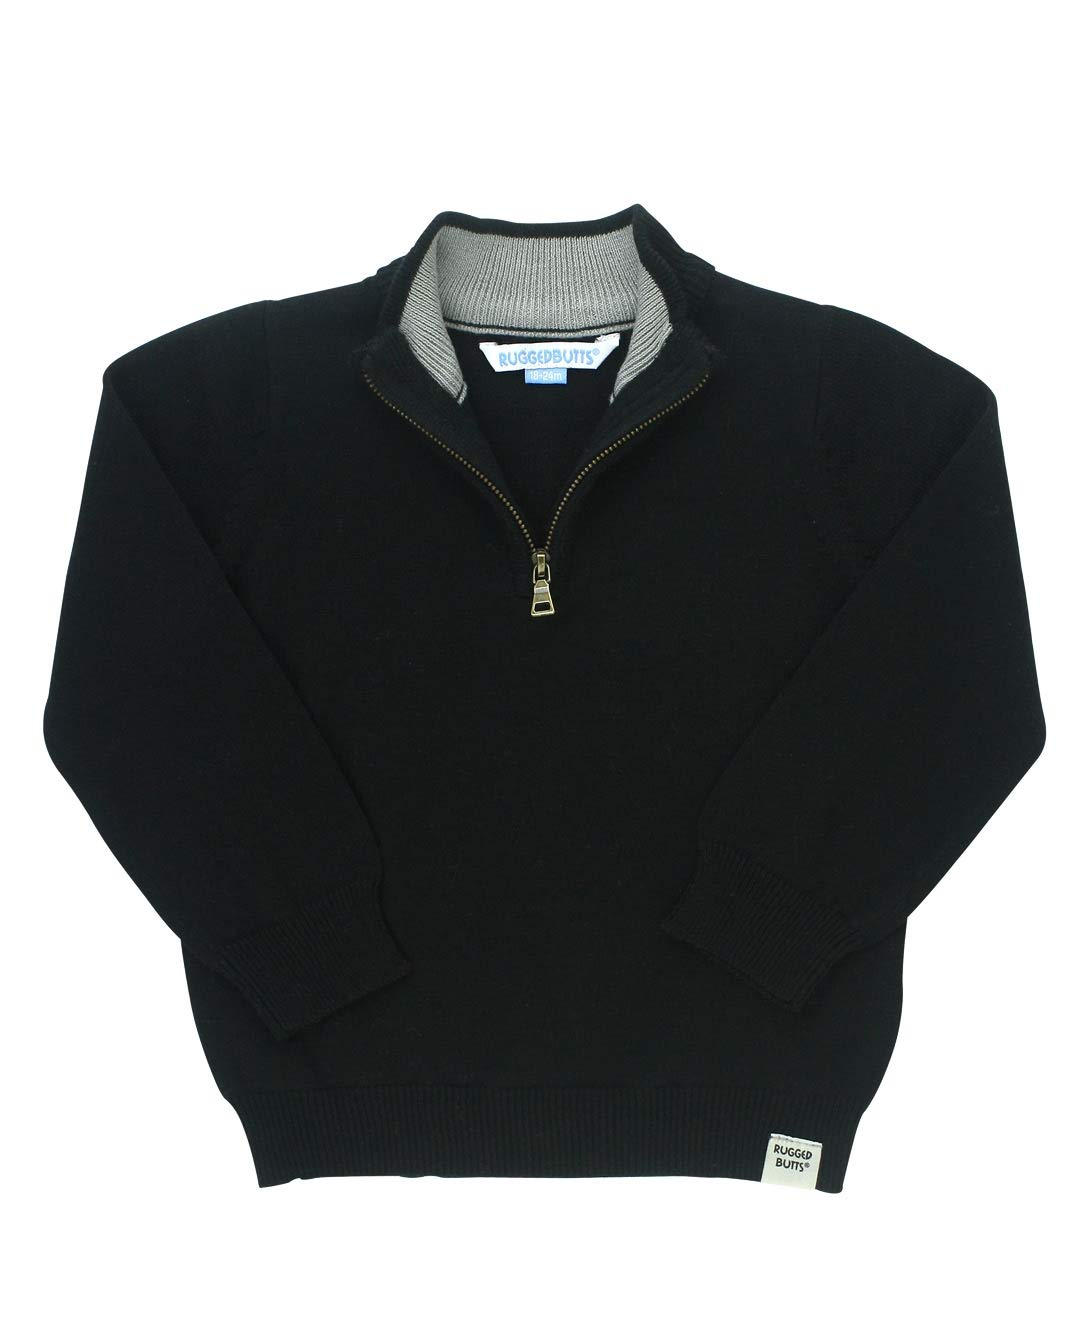 RuggedButts Little Boys Black Quarter-Zip Sweater - 4T